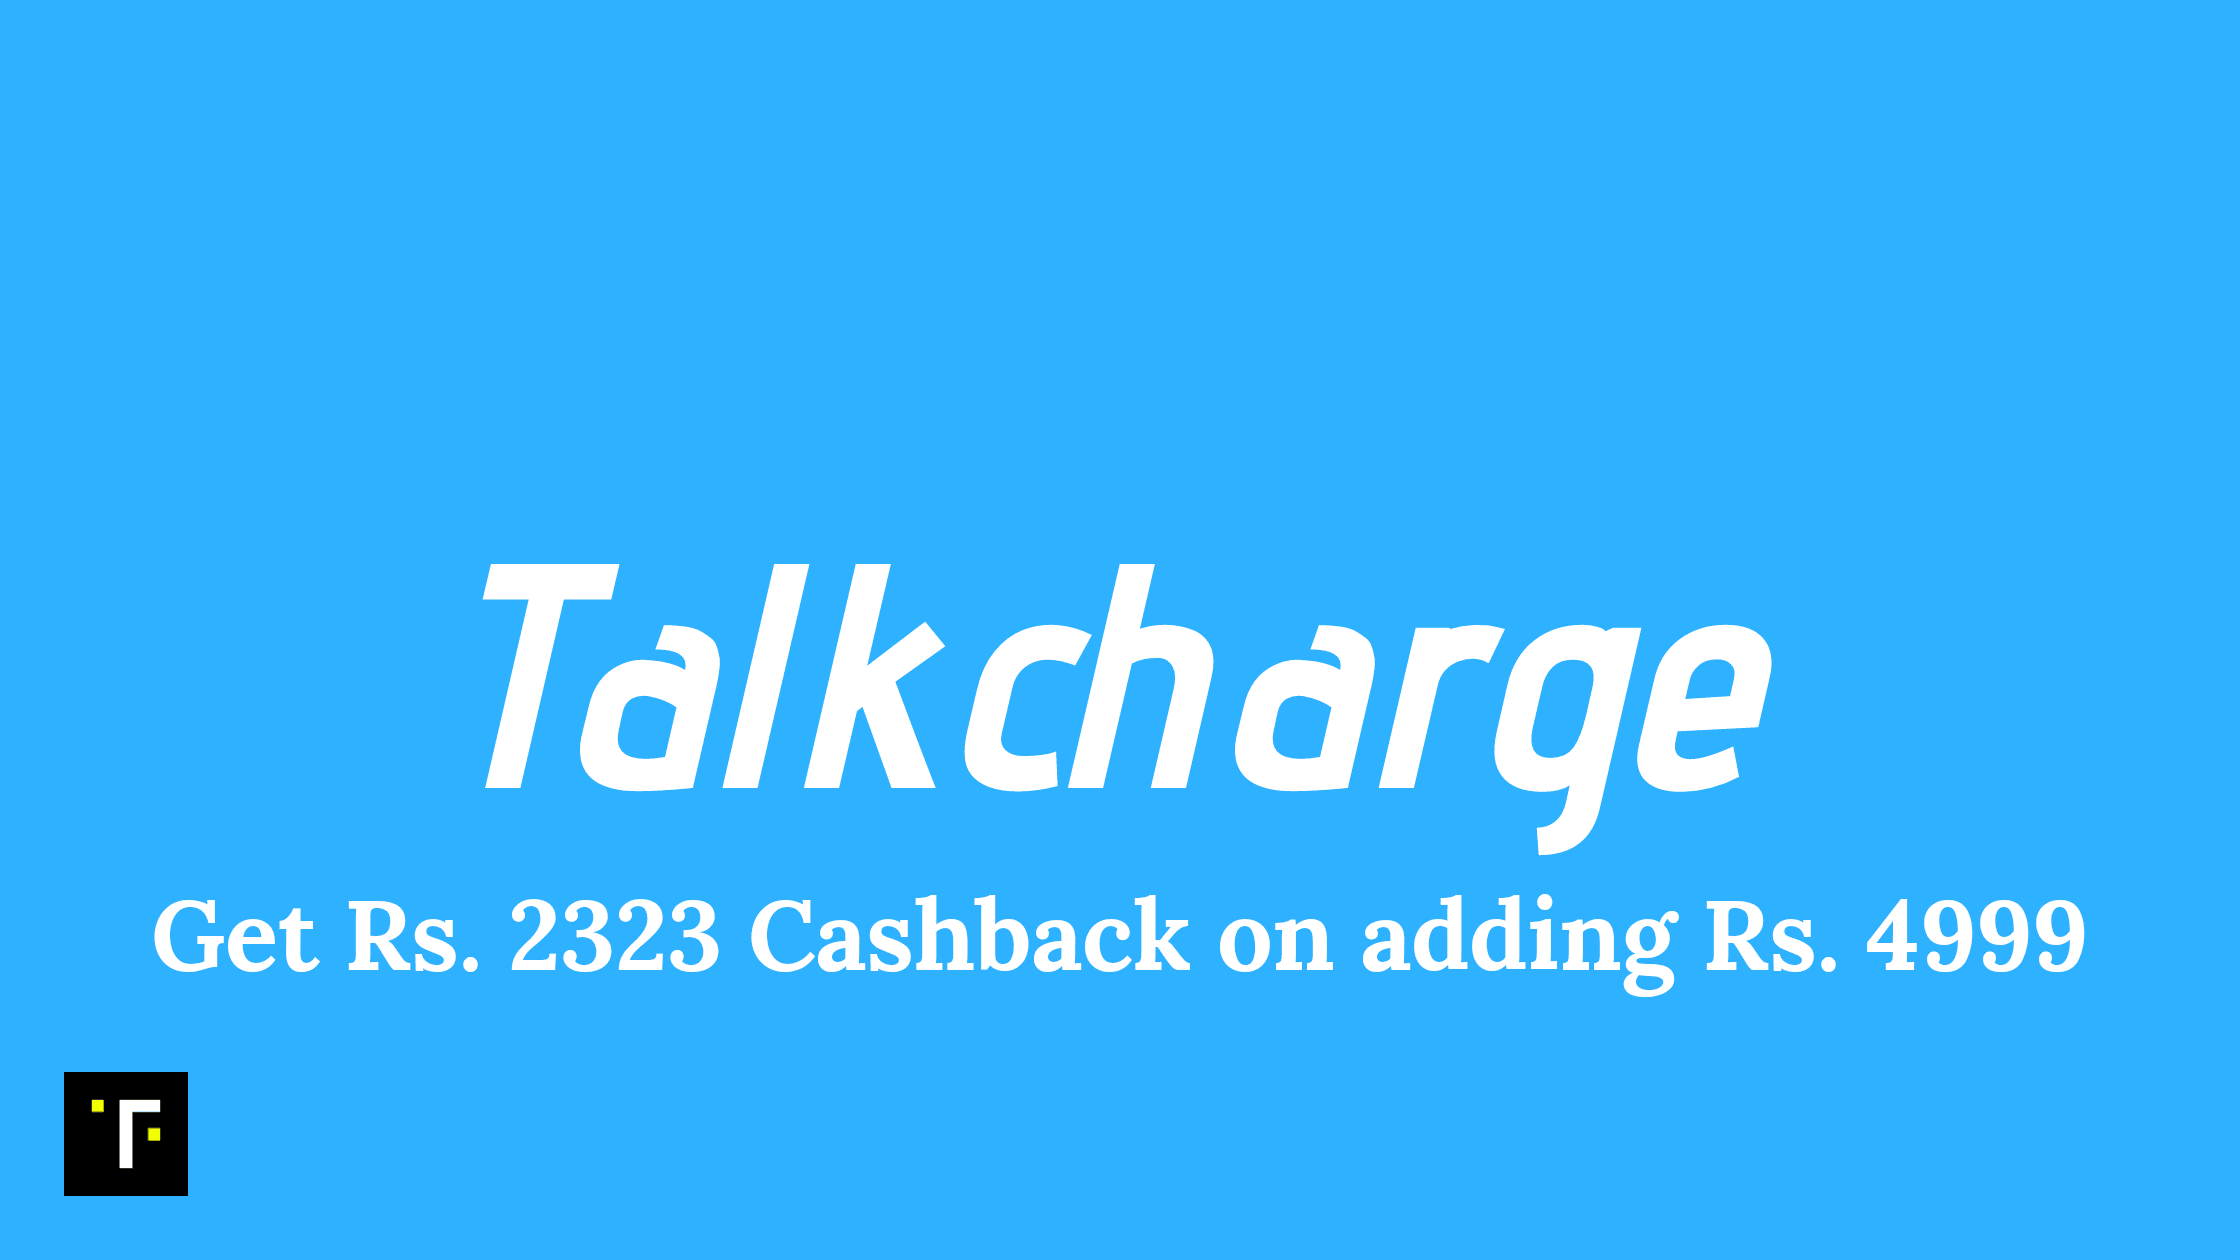 Talkcharge: Get Rs. 2323 Cashback on adding Rs. 4999 Awesome Offer - Thinkingfunda - Get rs. 2323 cashback on adding rs. 4999